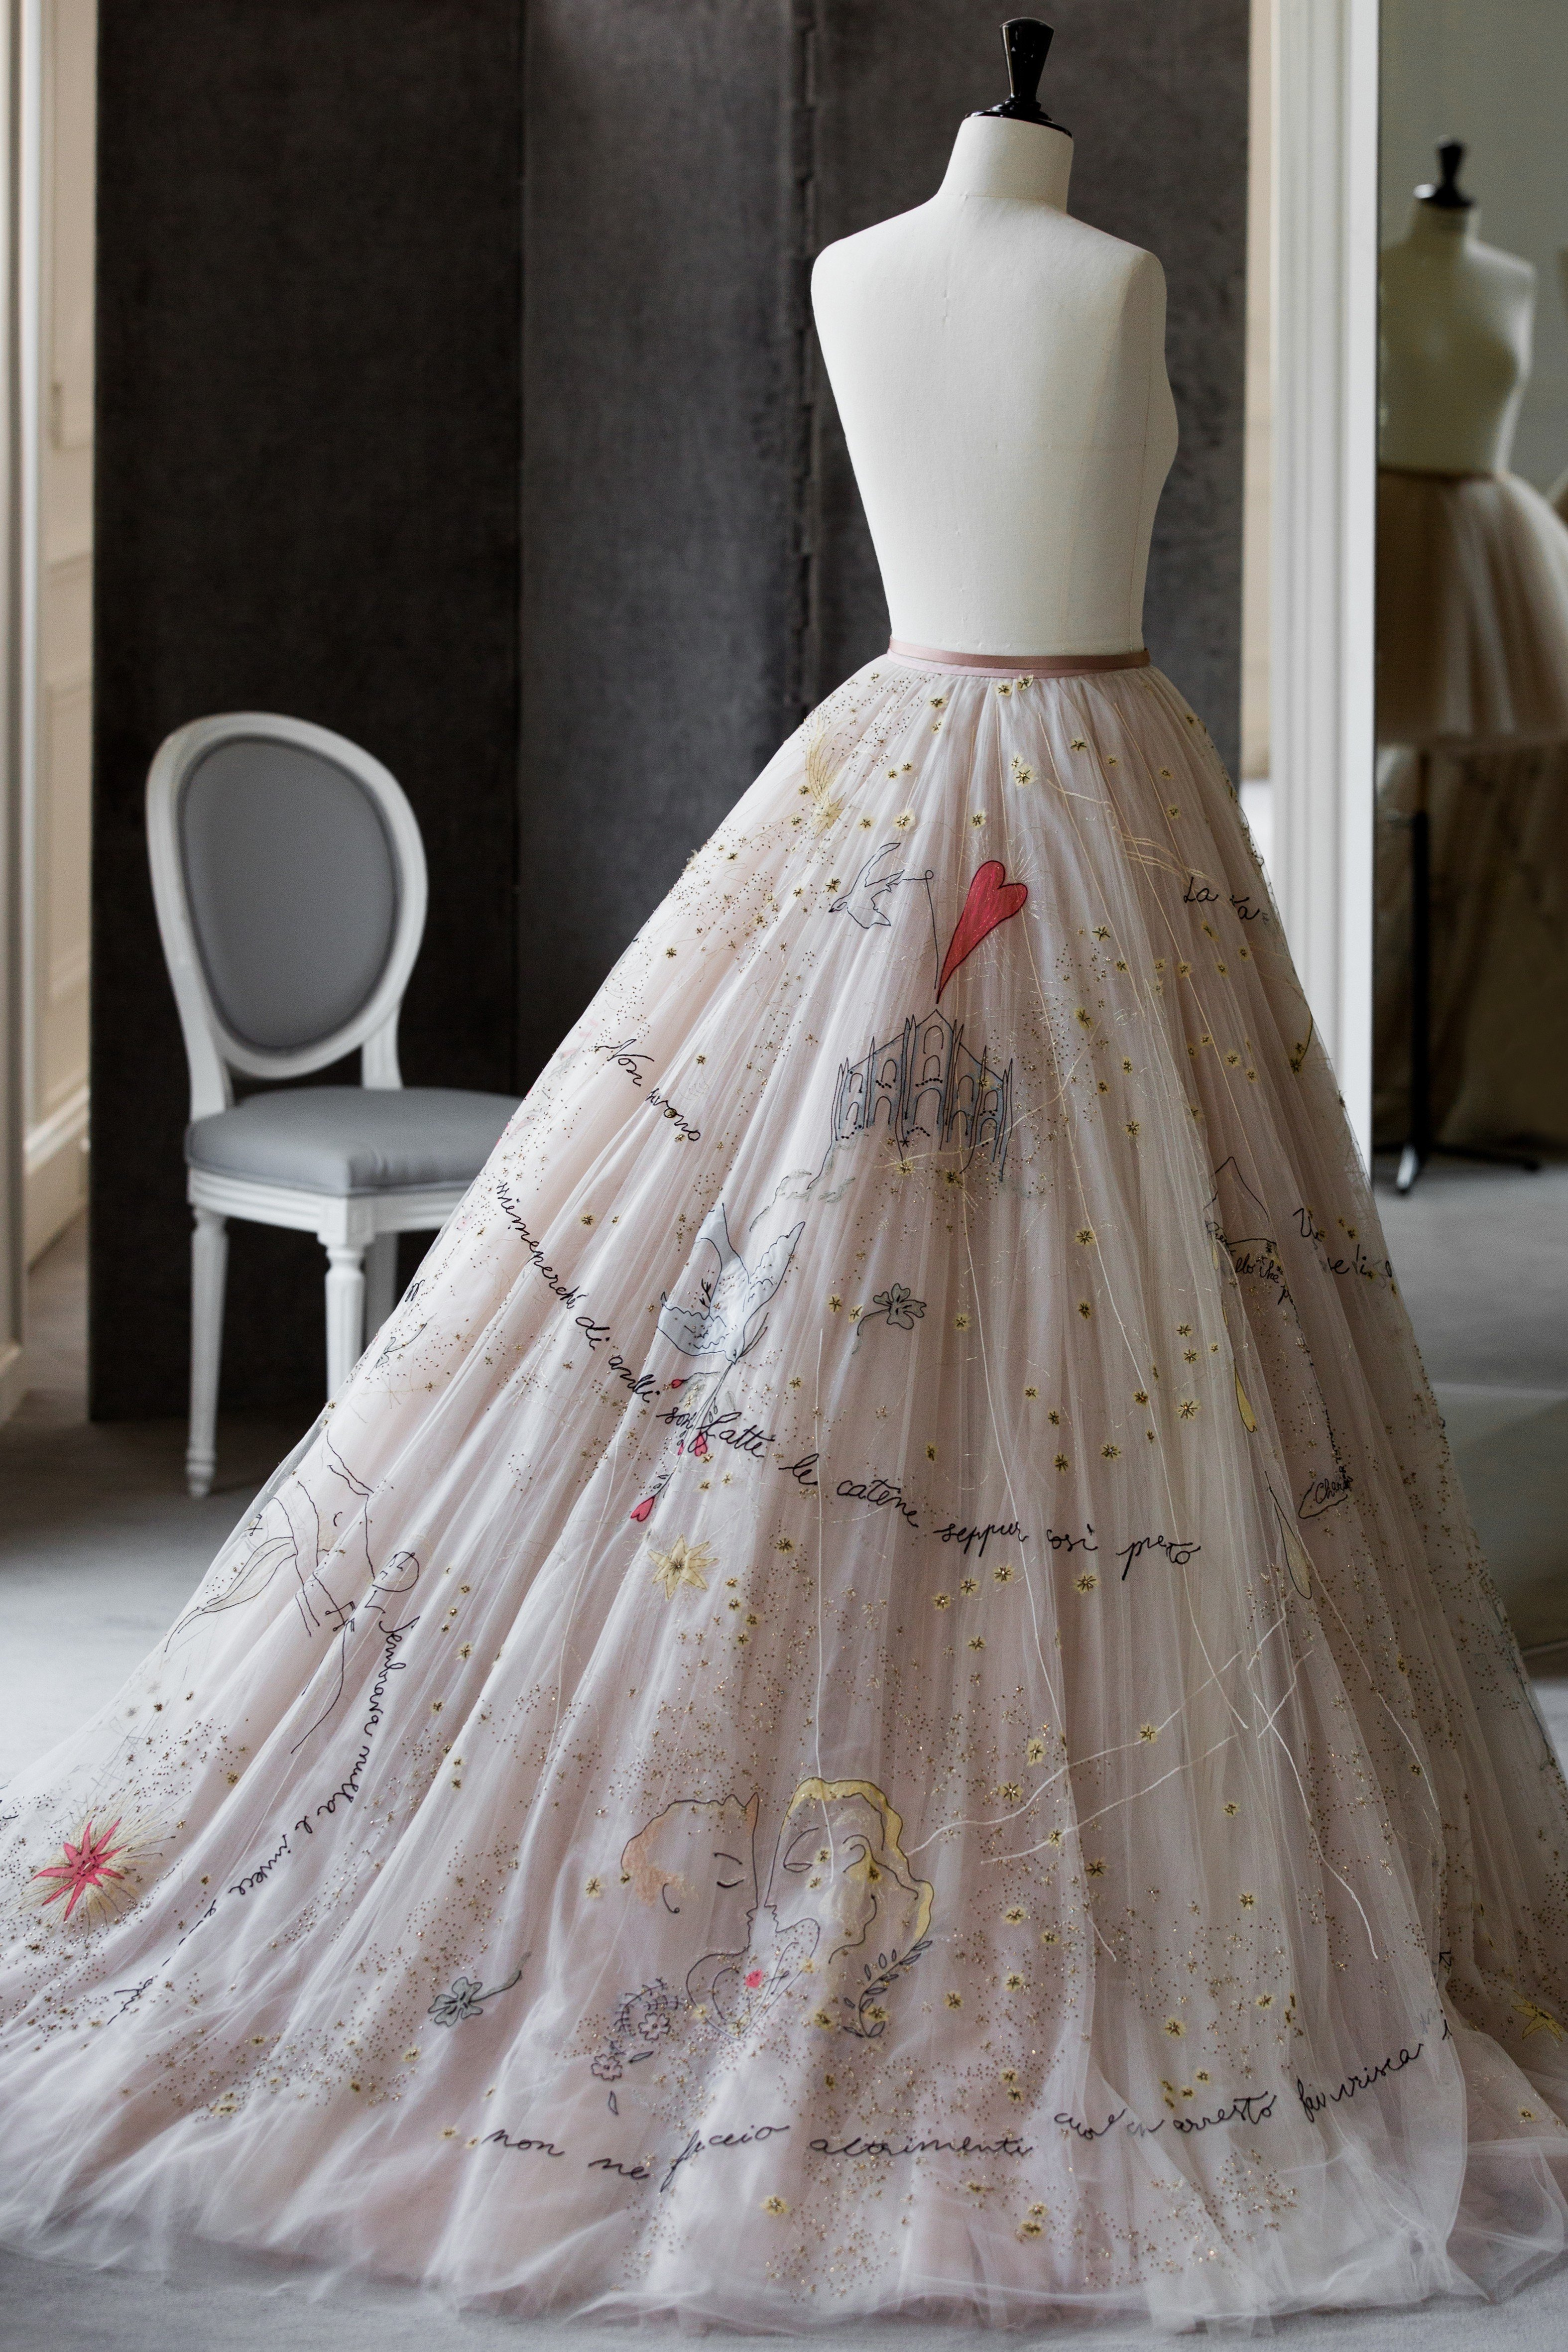 Italian Fashion Blogger Chiara Ferragni S Dior Evening Dress Which Features Extensive Embroidered Images Based On The Words Of A Song Her Rer Husband